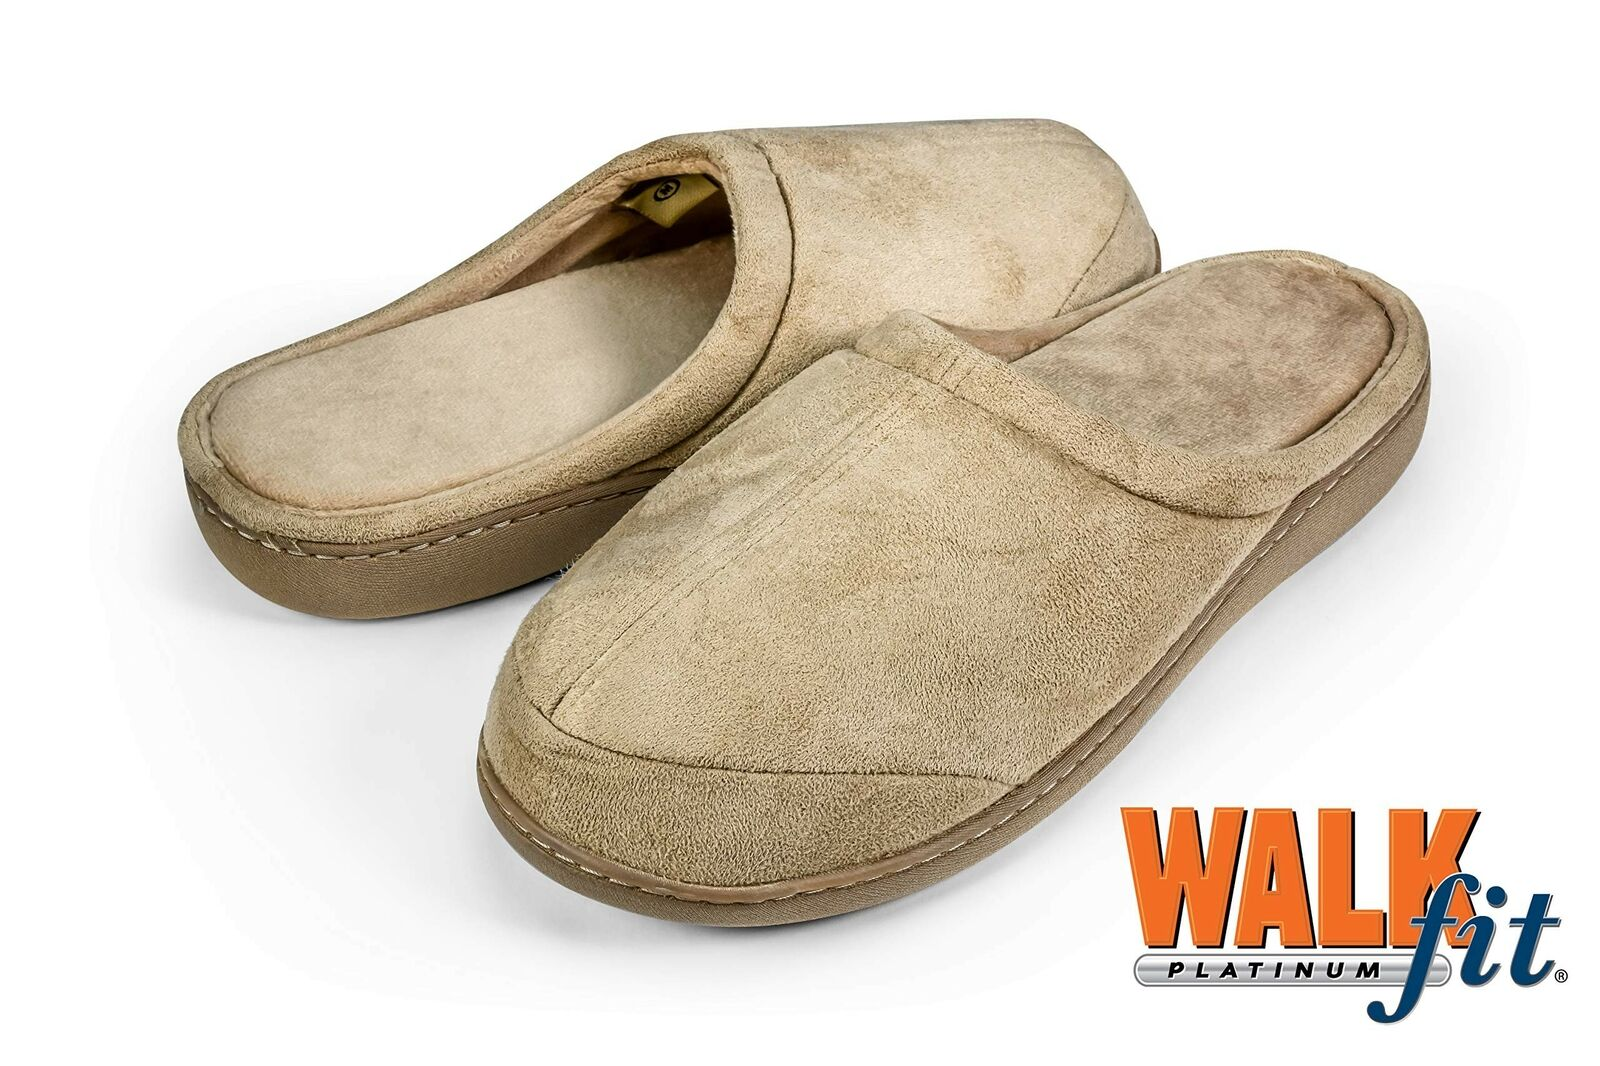 WalkFit Platinum Total Comfort Slippers Women's or Men's House Shoes Memory F... 1